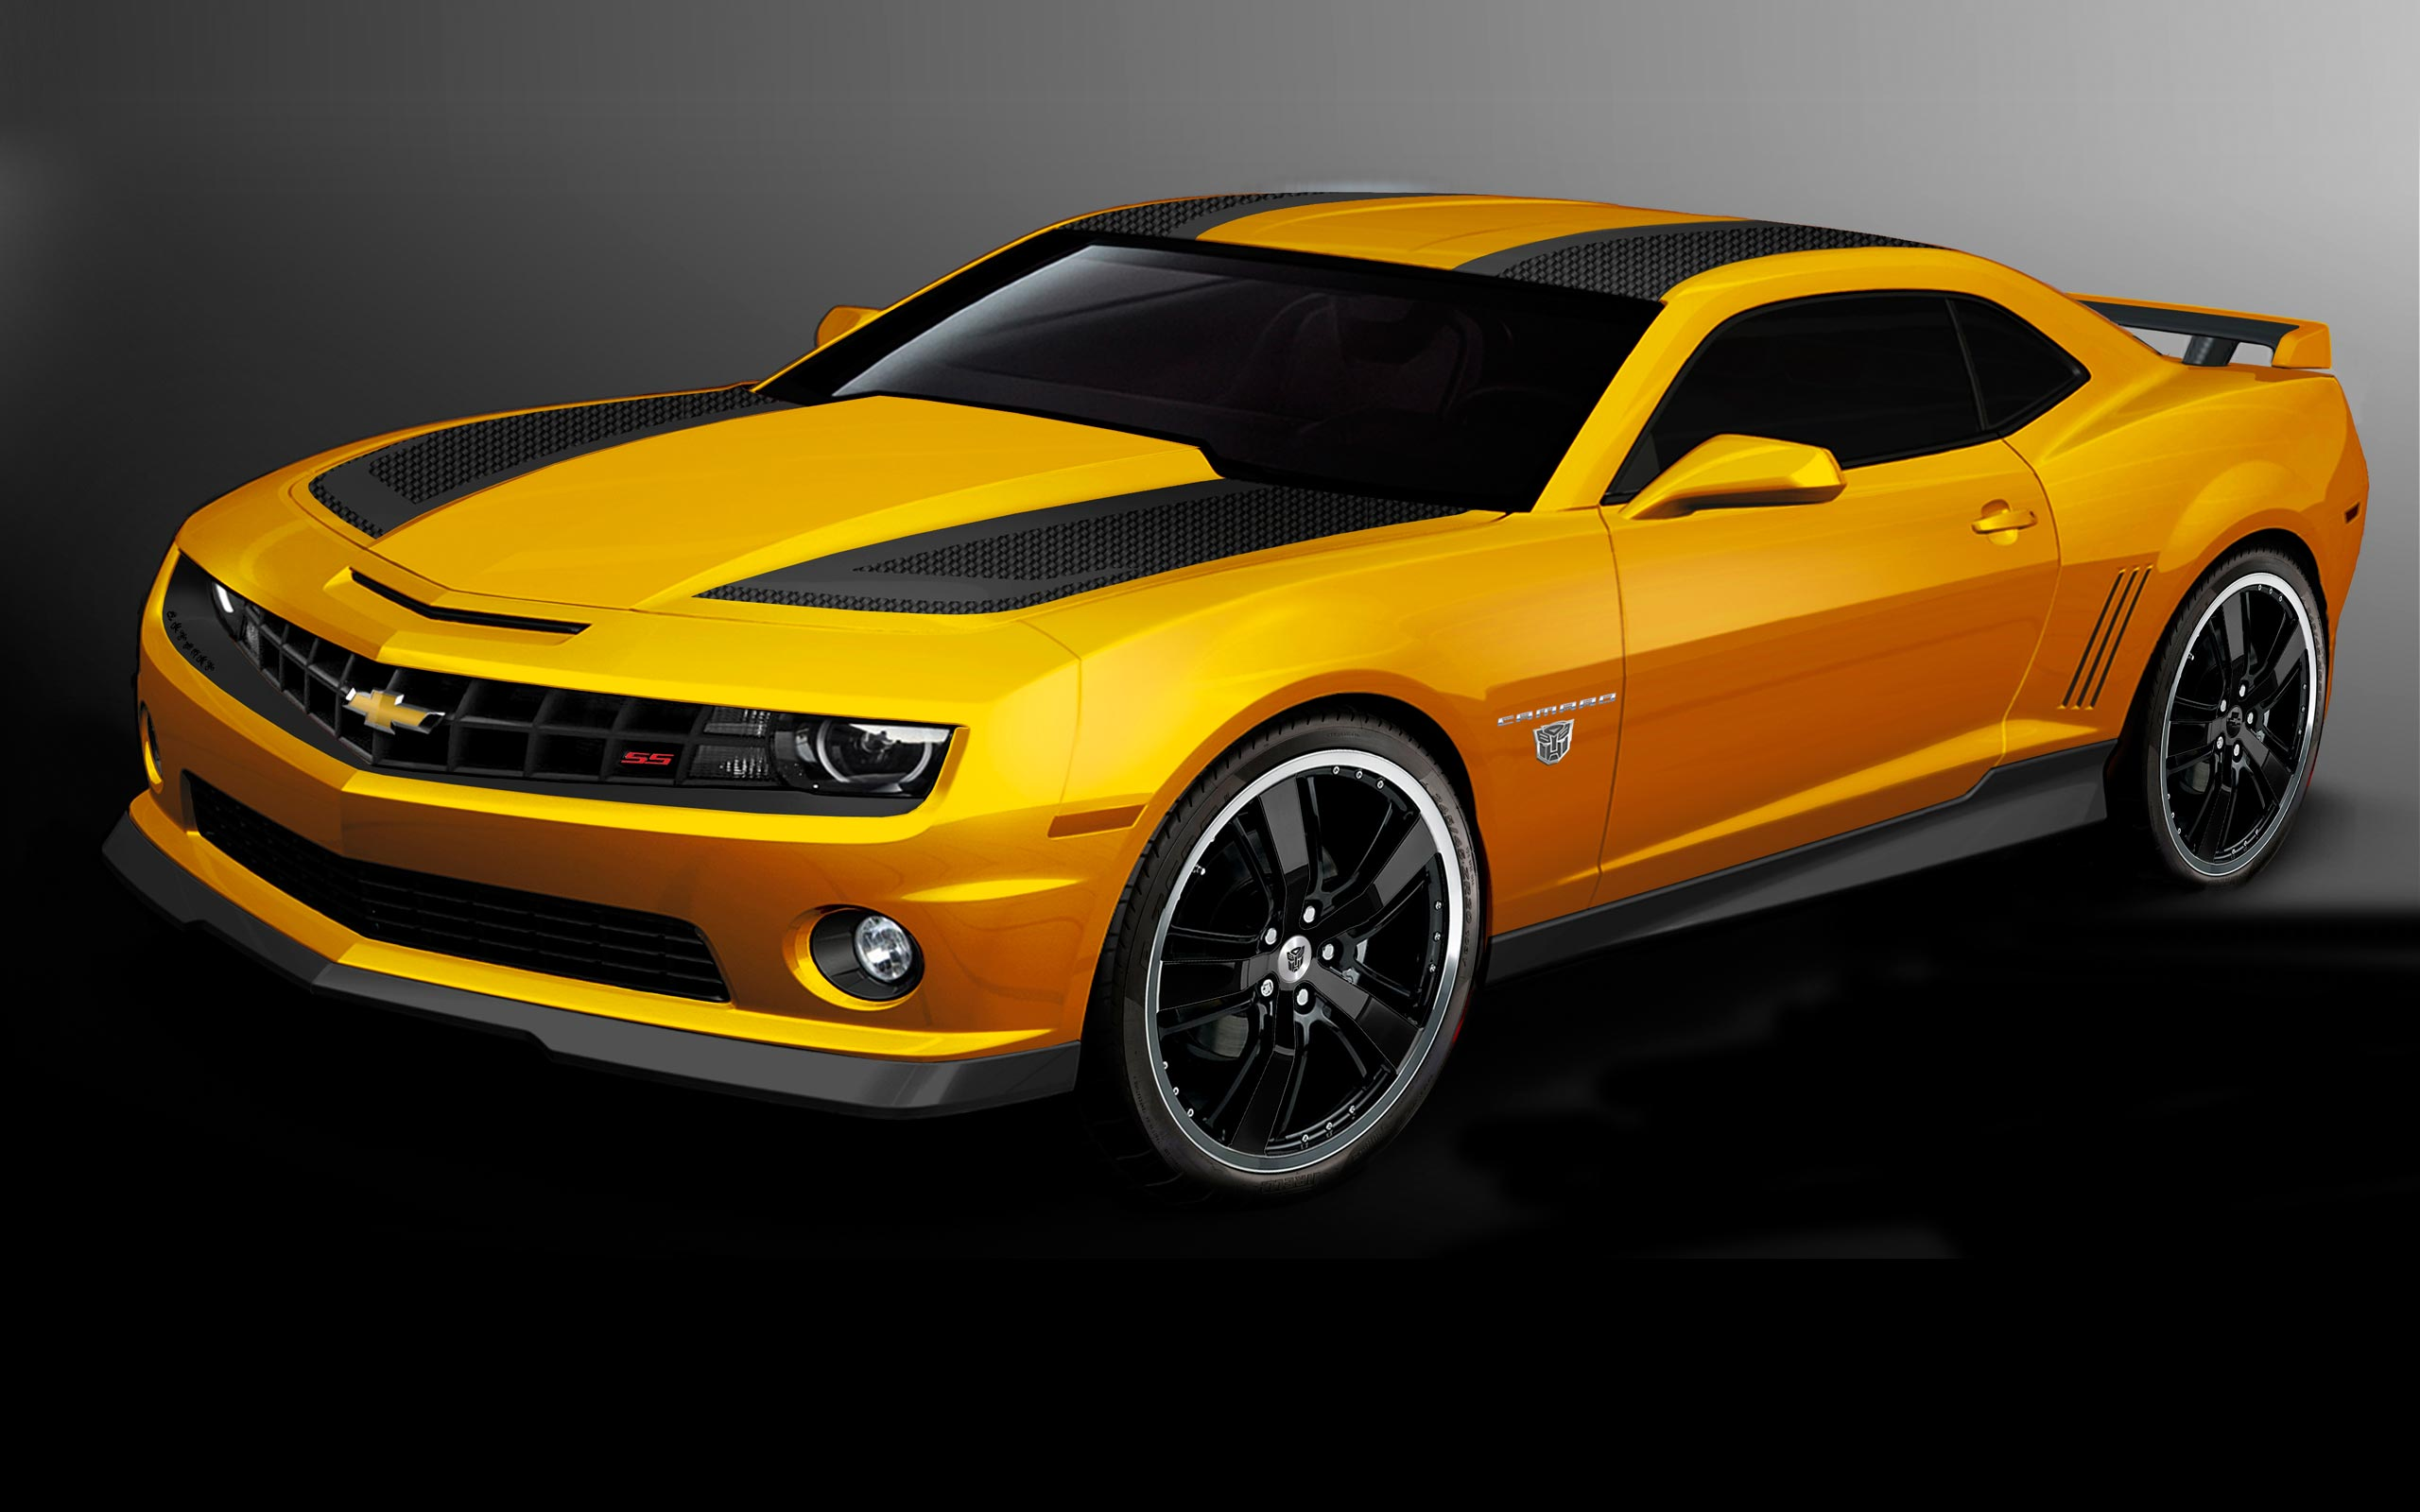 Car Camaro Bumblebee Hd Fast Cool Cars 245353 With Resolutions 2560 2560x1600